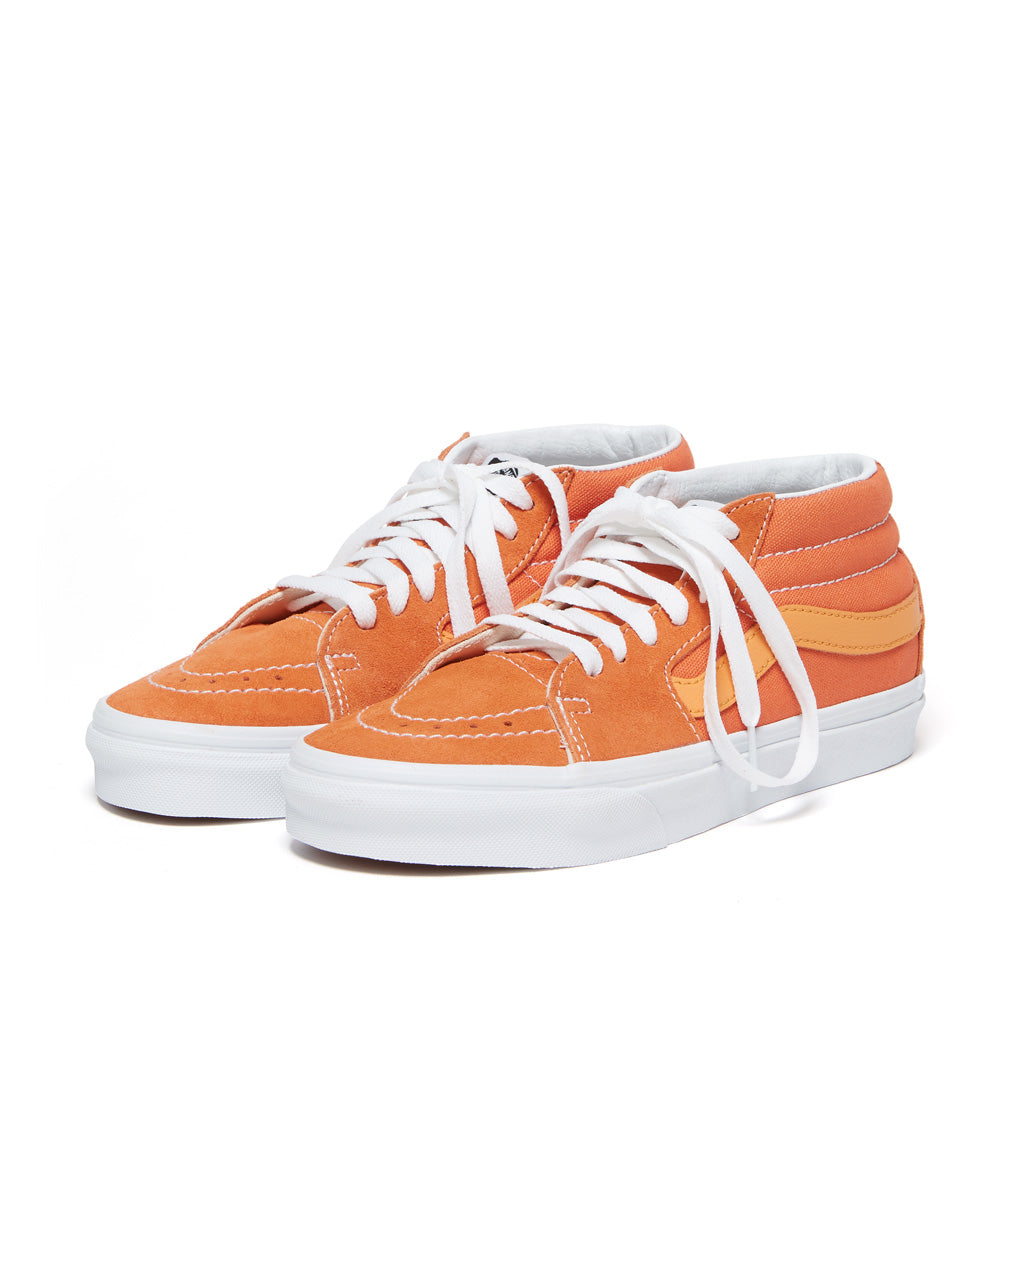 These Sk8-Hi shoes by Vans come in amber orange with yellow accents.